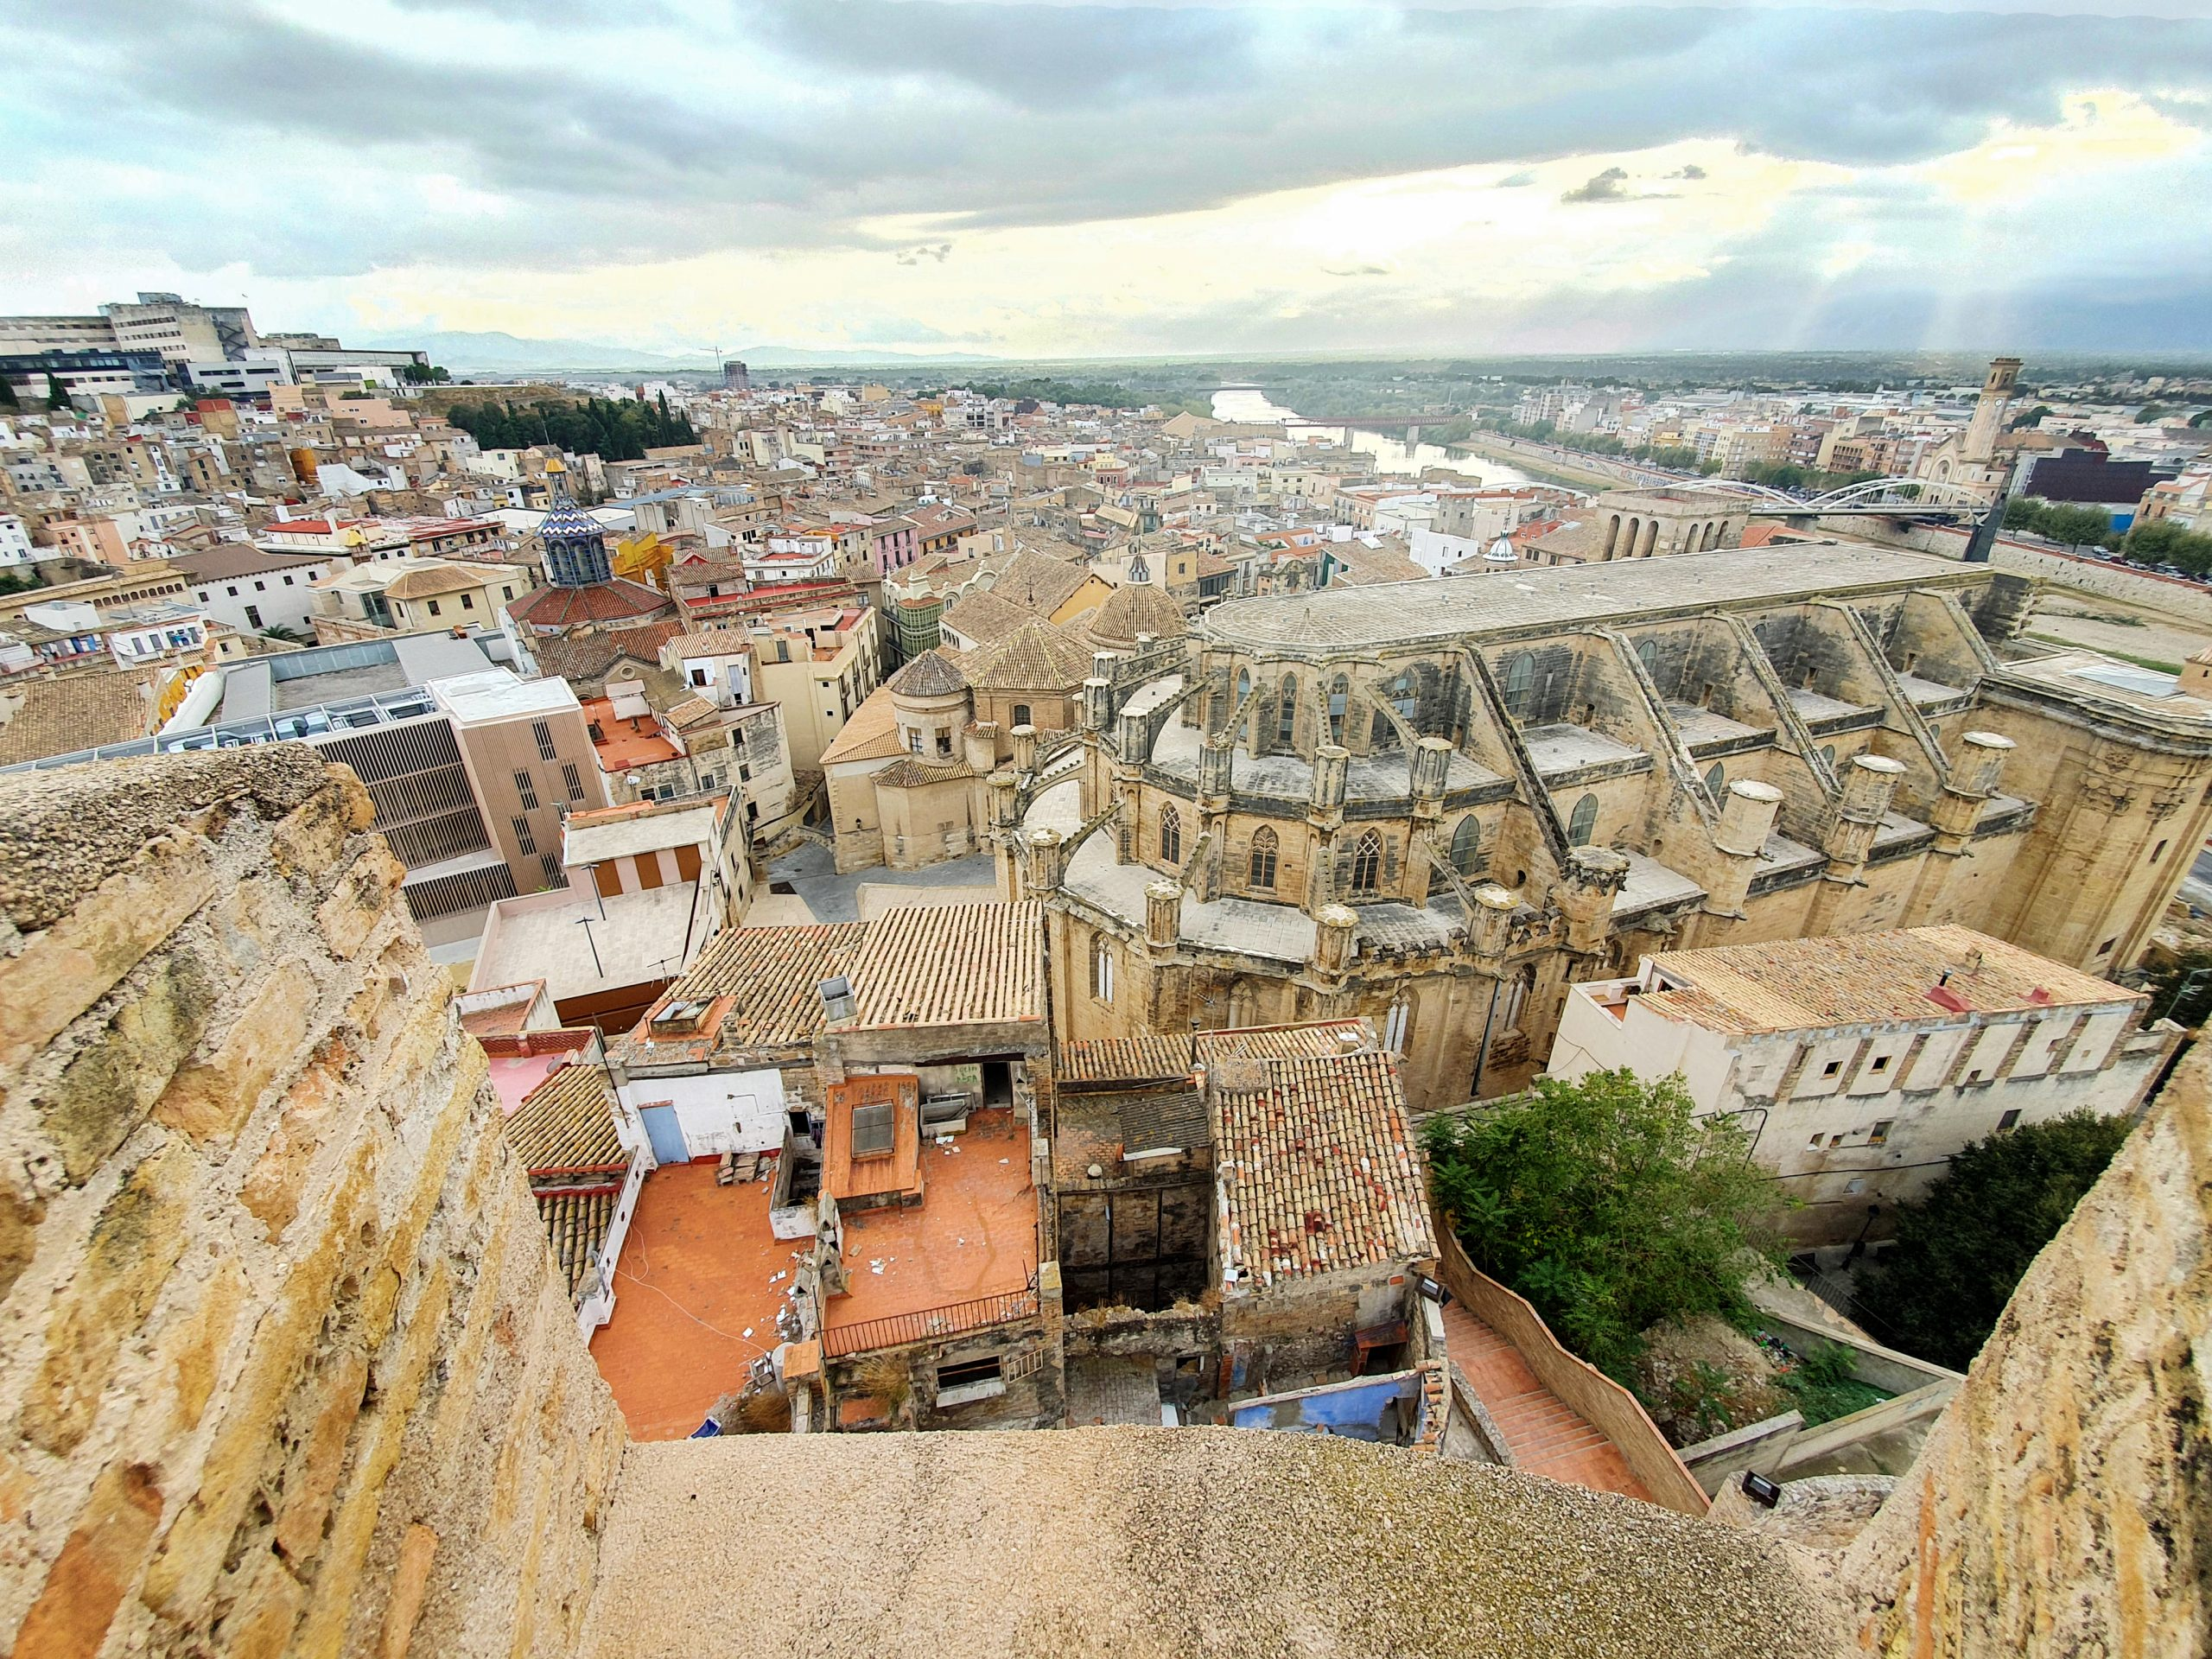 tortosa-historic-town-from-above-YG3RFHE